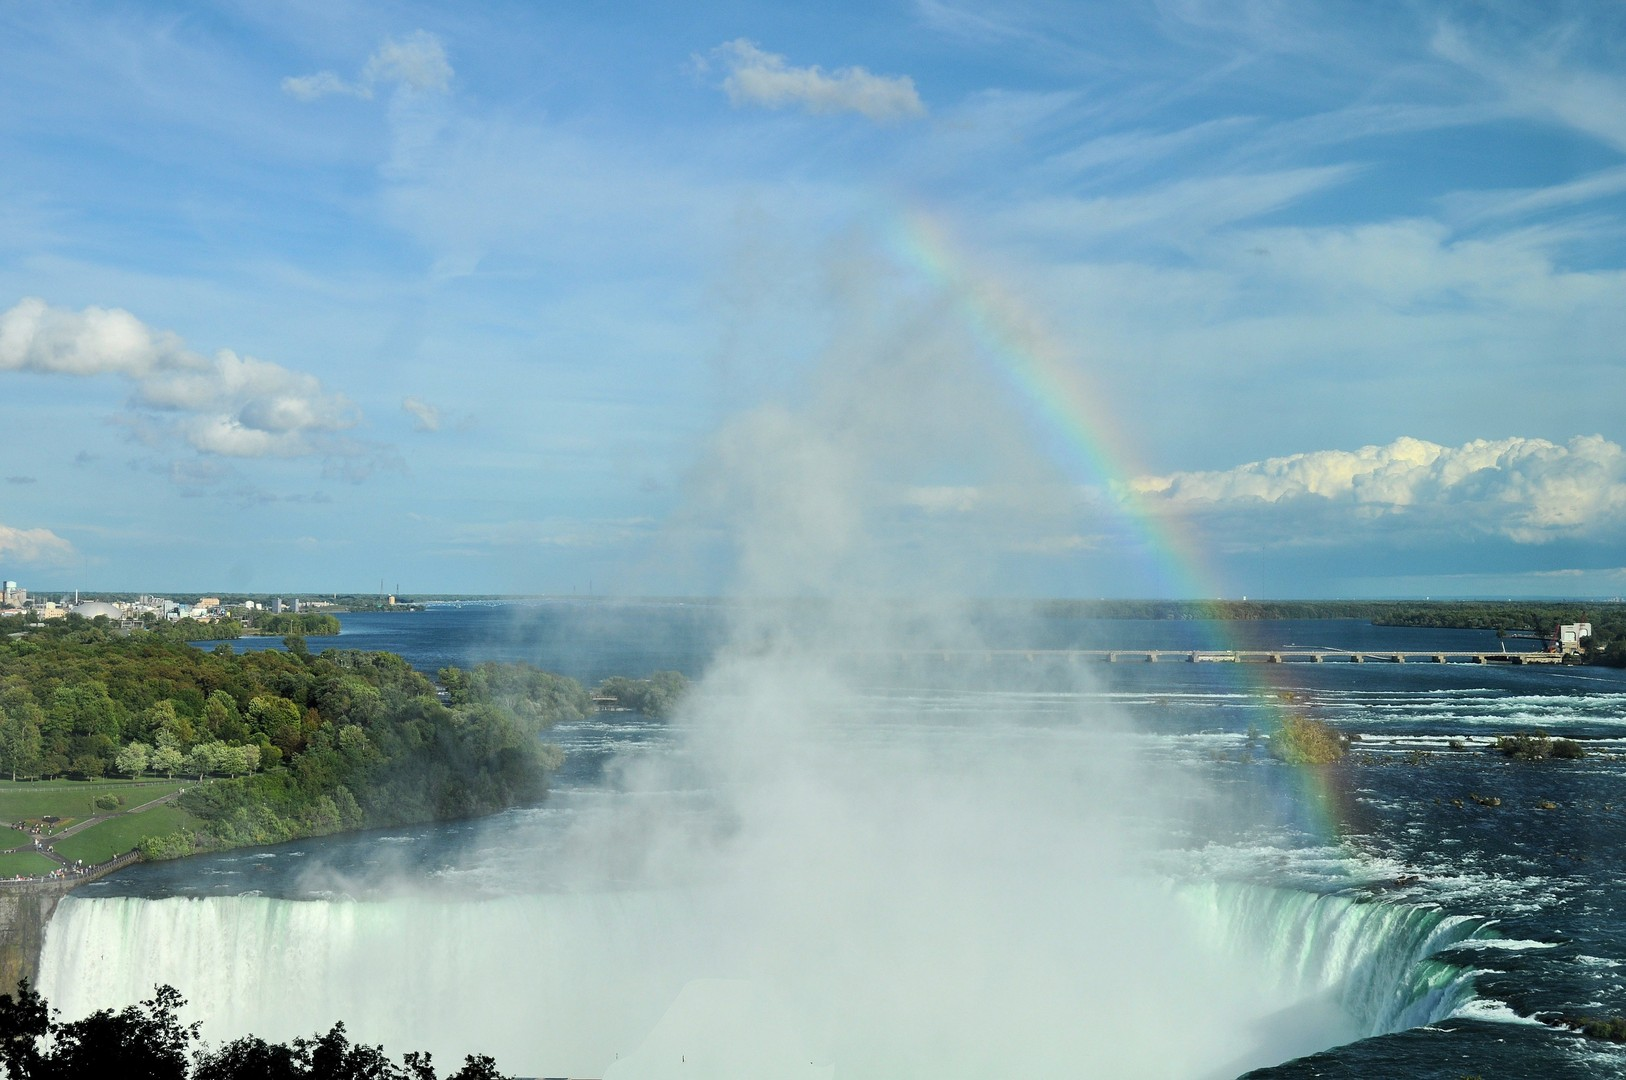 Horseshoe Falls (Niagara Falls) from our hotel room